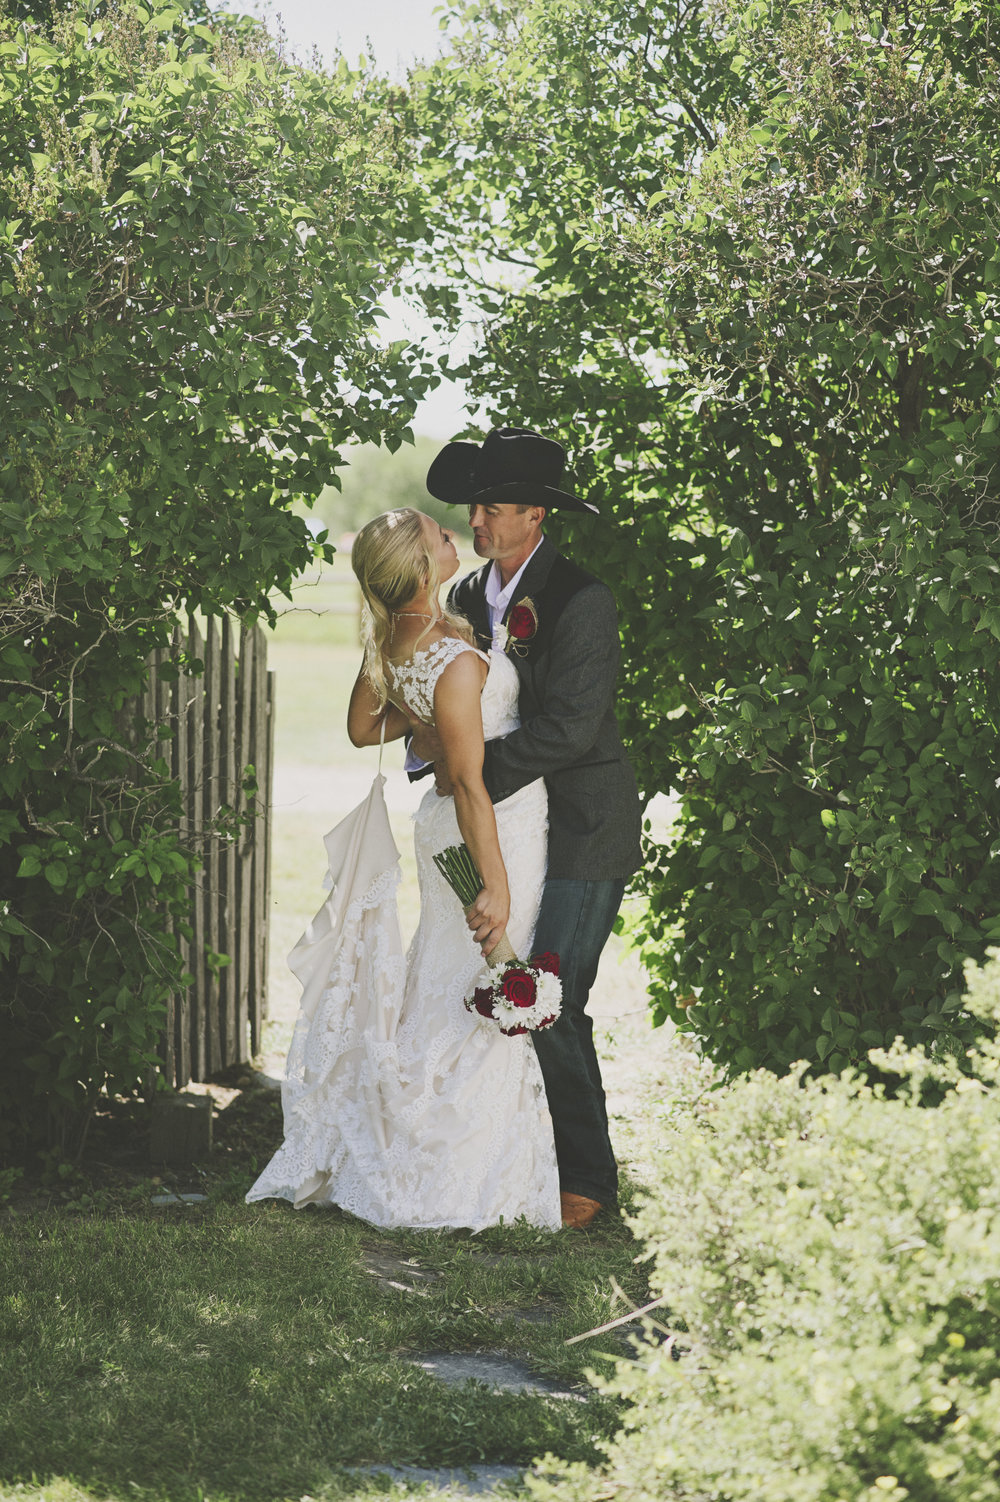 Erica Lind + Jeff Heim Wedding_Rustic Wedding_Montana Wedding_Kelsey Lane Photography-3864 copy.jpg